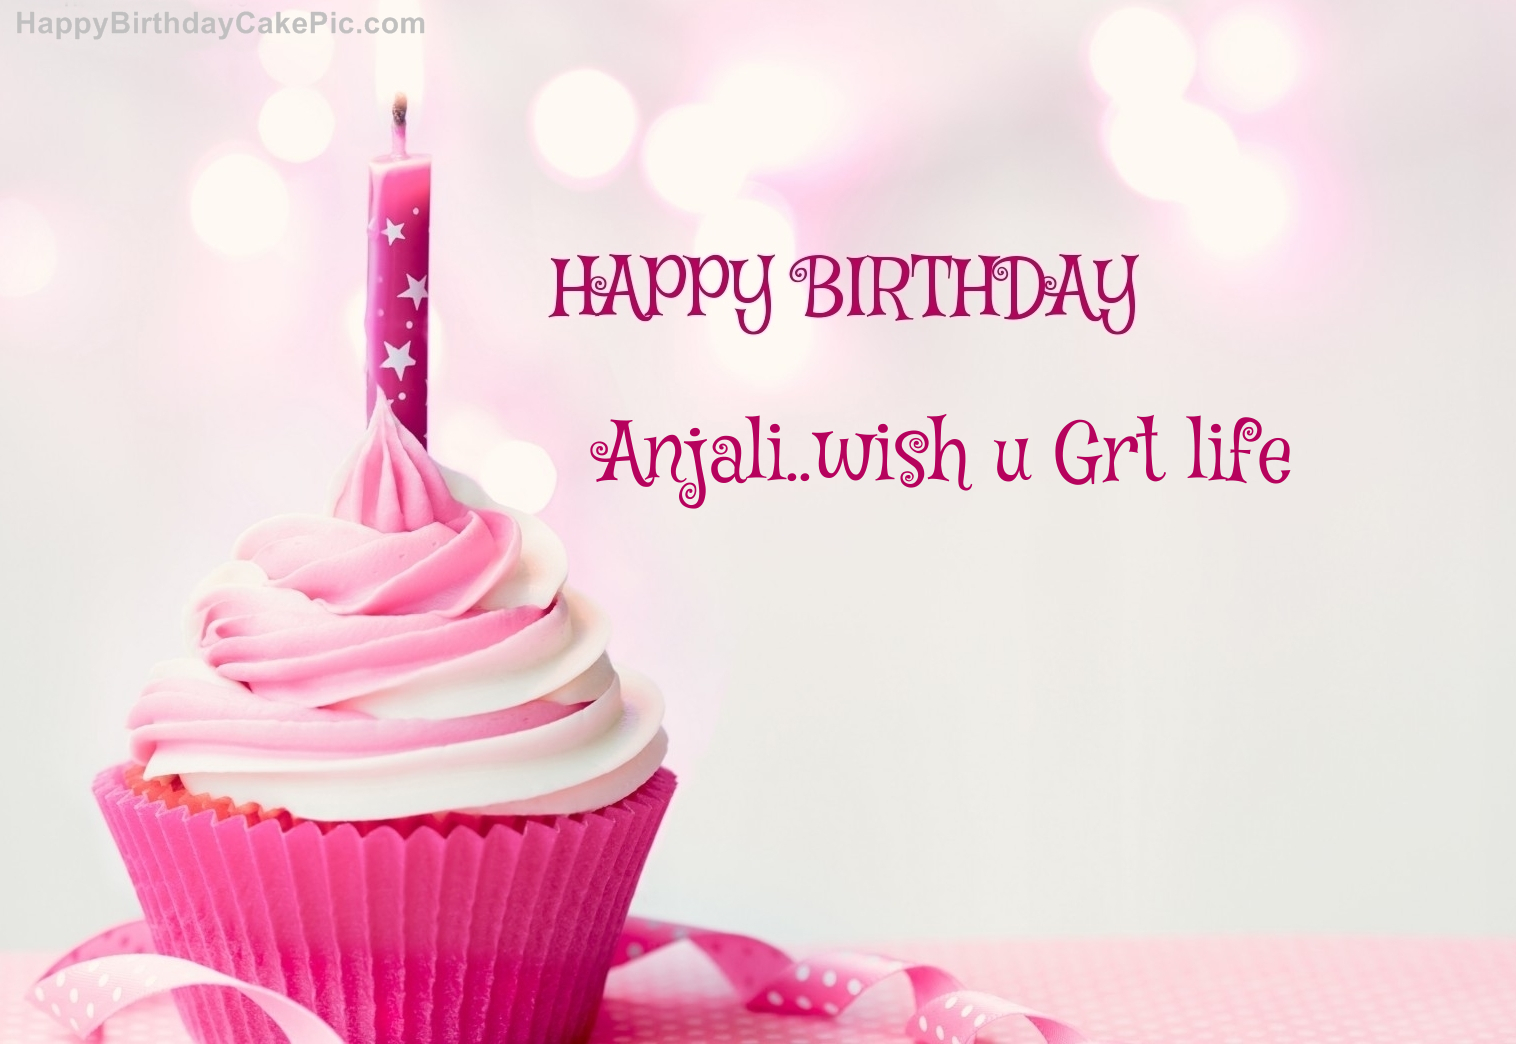 Happy Birthday Anjali - Cake Images HD